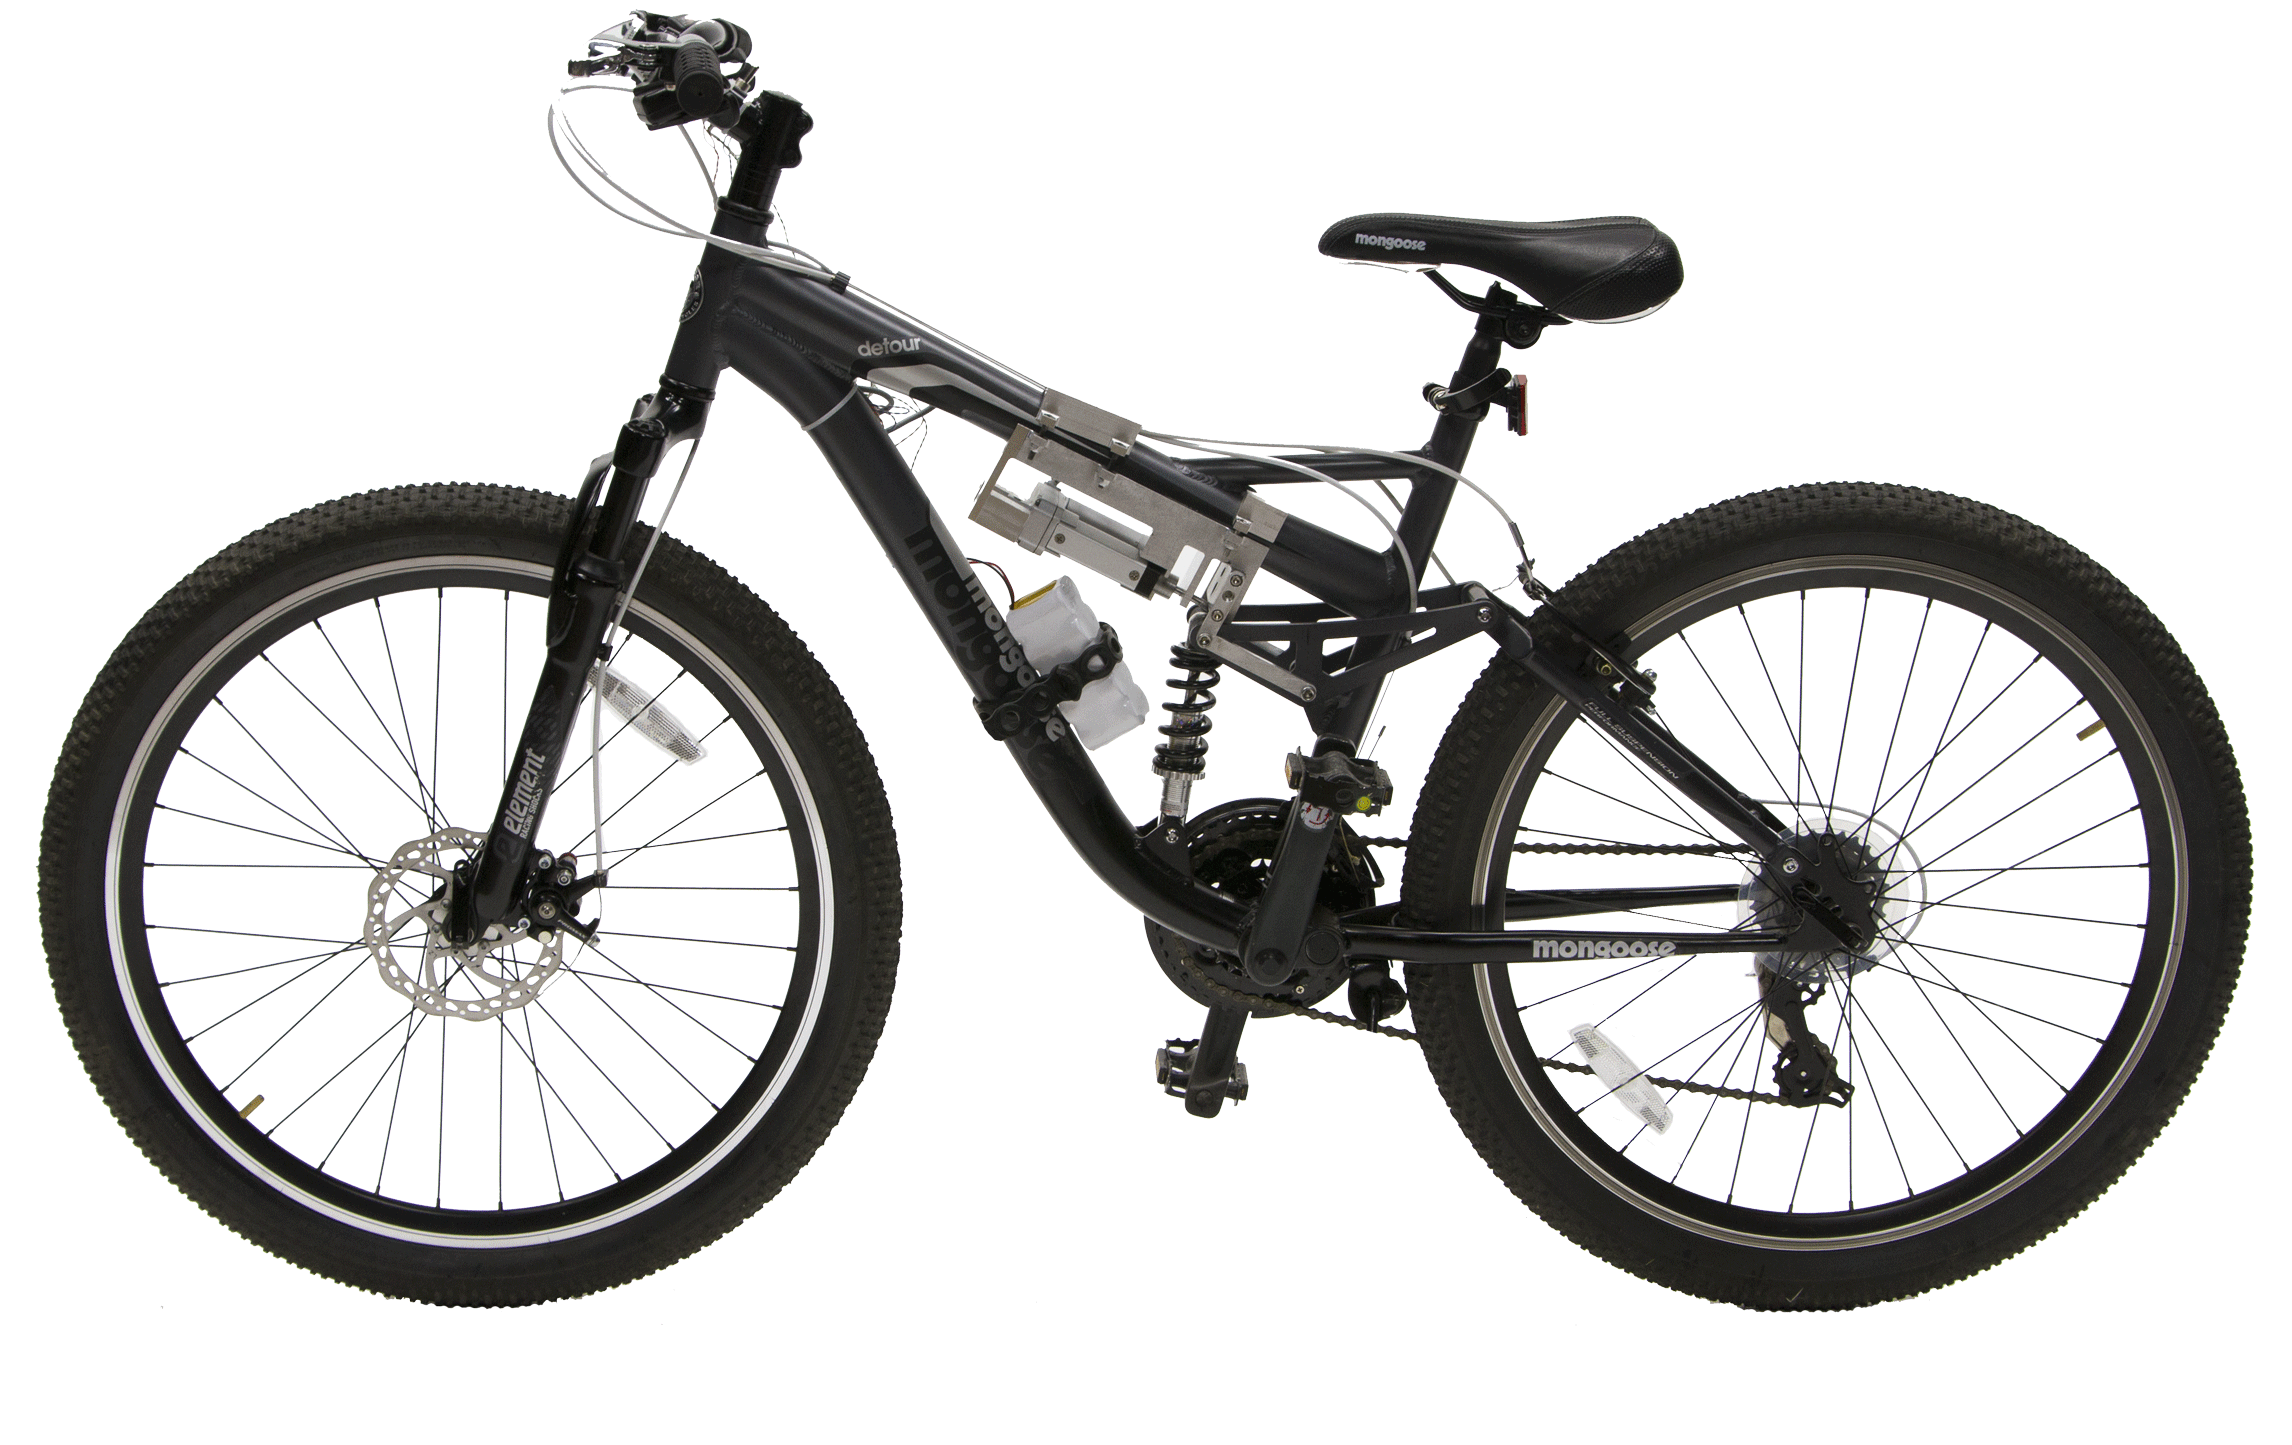 Bicycle Hd Png Transparent Bicycle Hd Png Images Pluspng